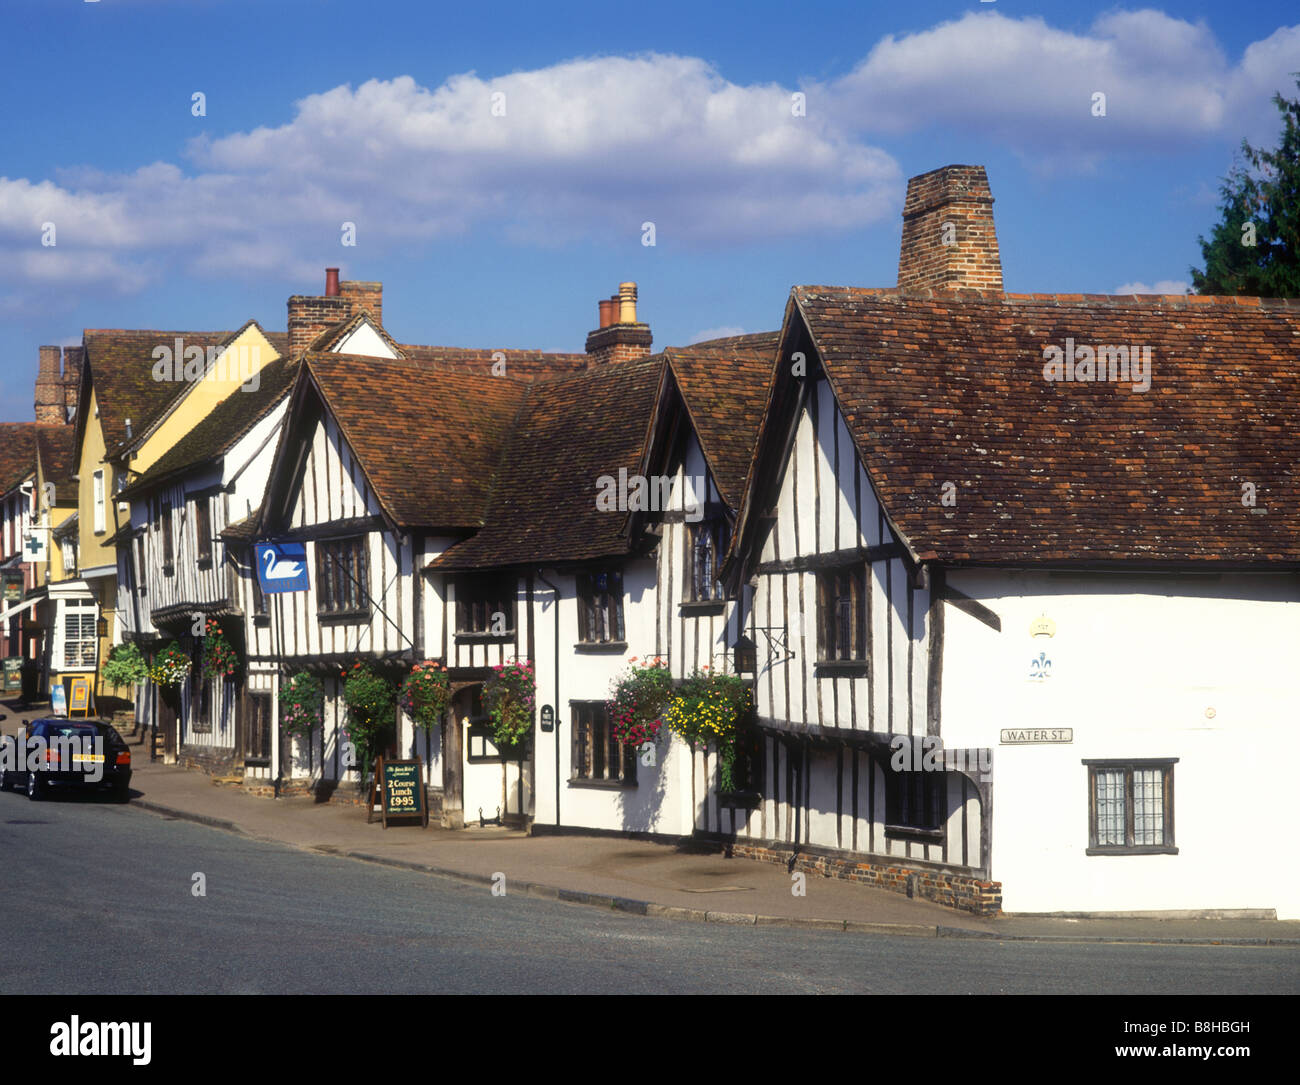 Street scene in the village of Lavenham showing the Swan Hotel, a medieval half-timbered building - Stock Image